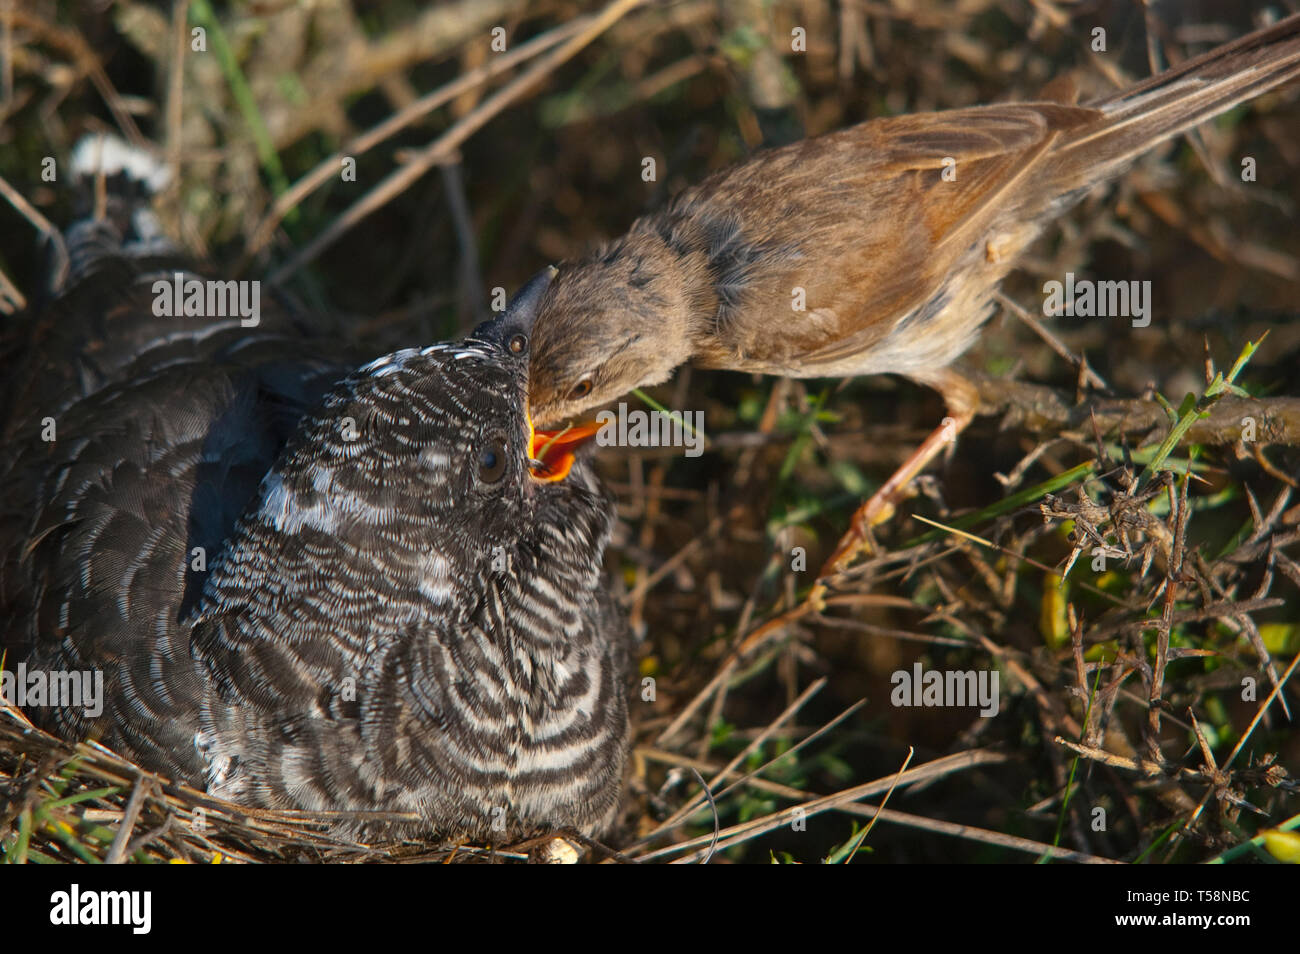 Common cuckoo - Cuculus canorus Young in the nest fed by his adoptive mother - Sylvia conspicillata - Spectacled Warbler - Stock Image